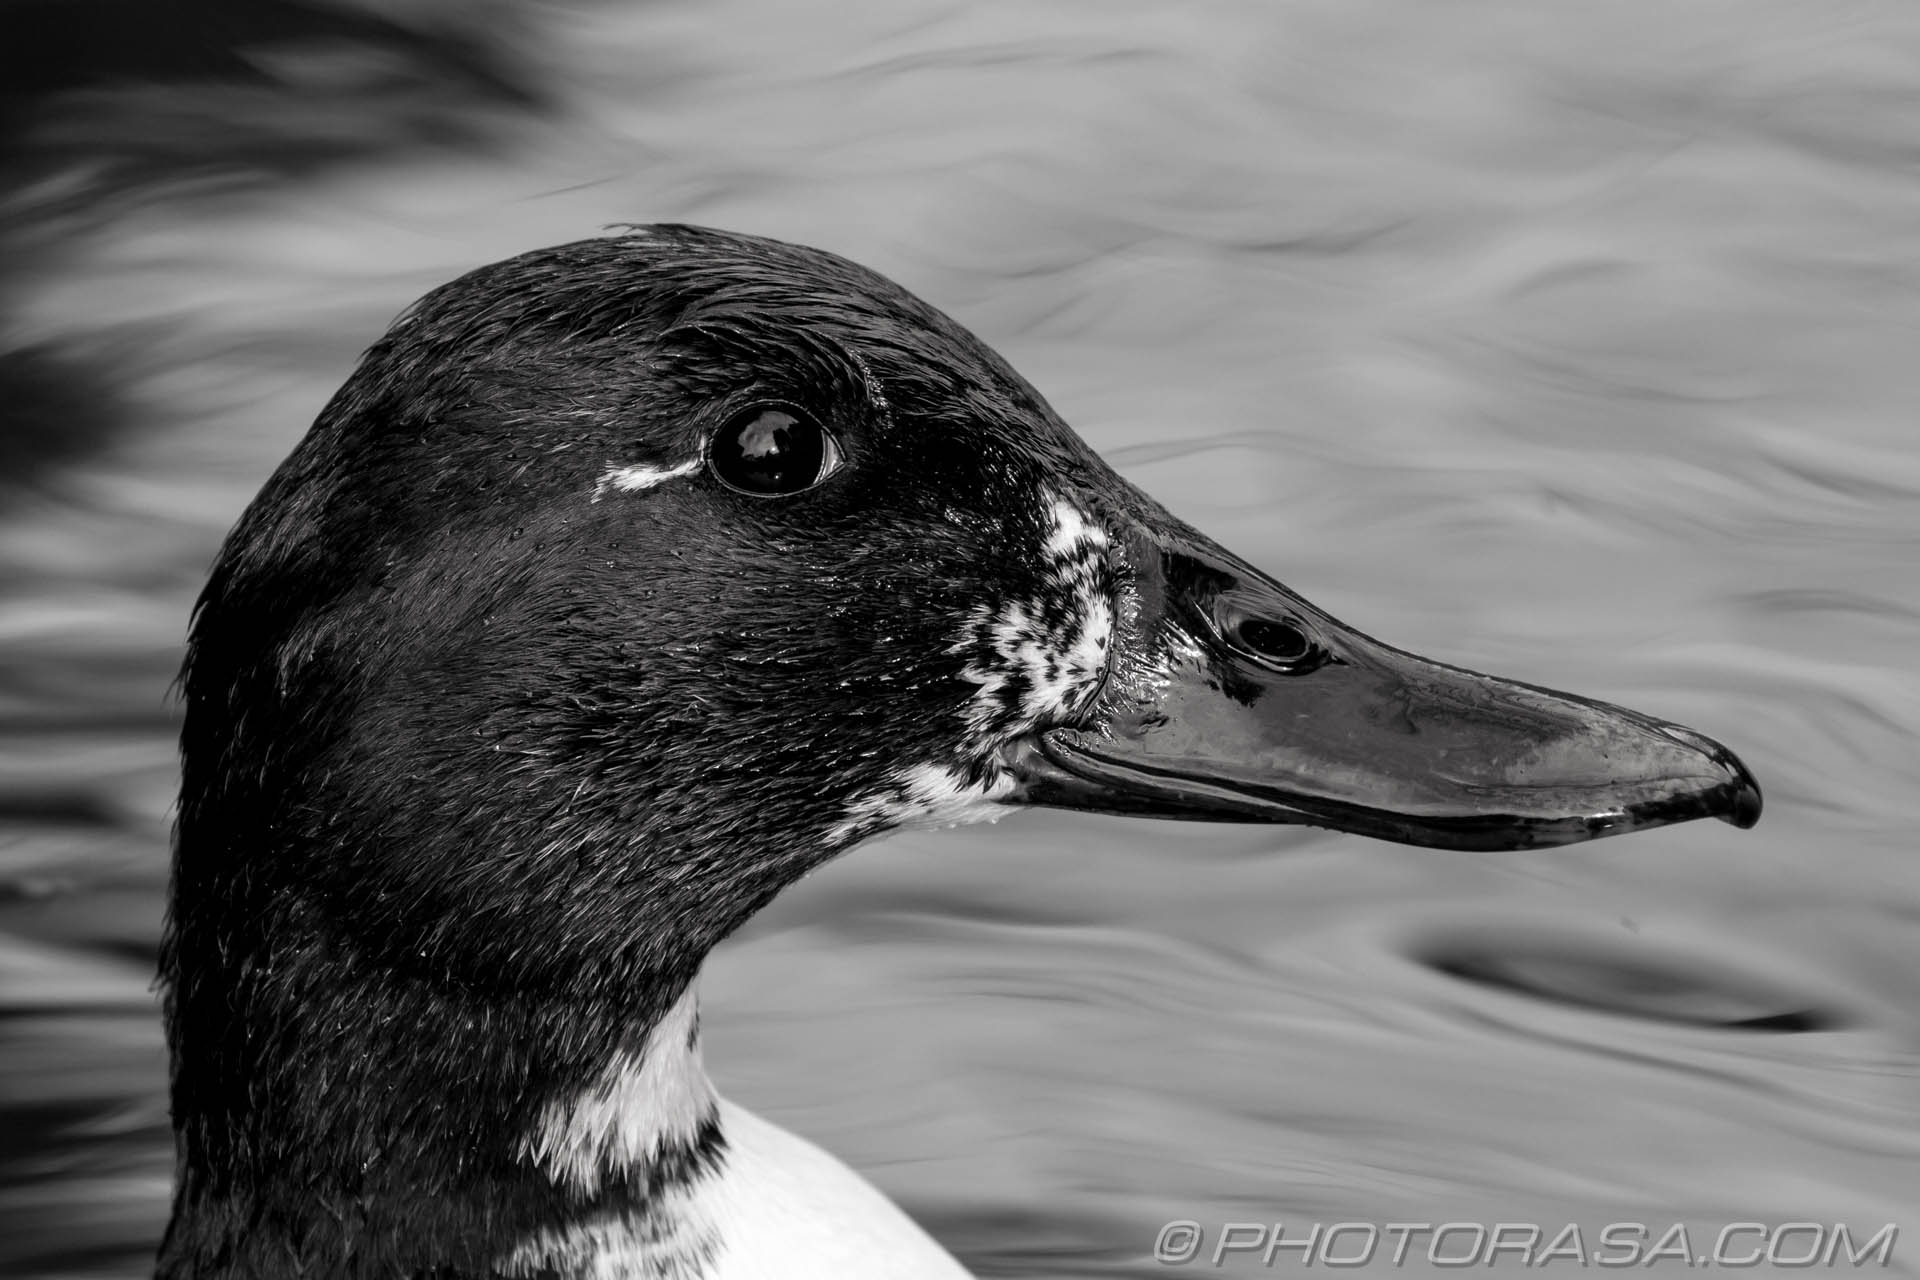 http://photorasa.com/black-and-white-duck/black-and-white-duck-2/